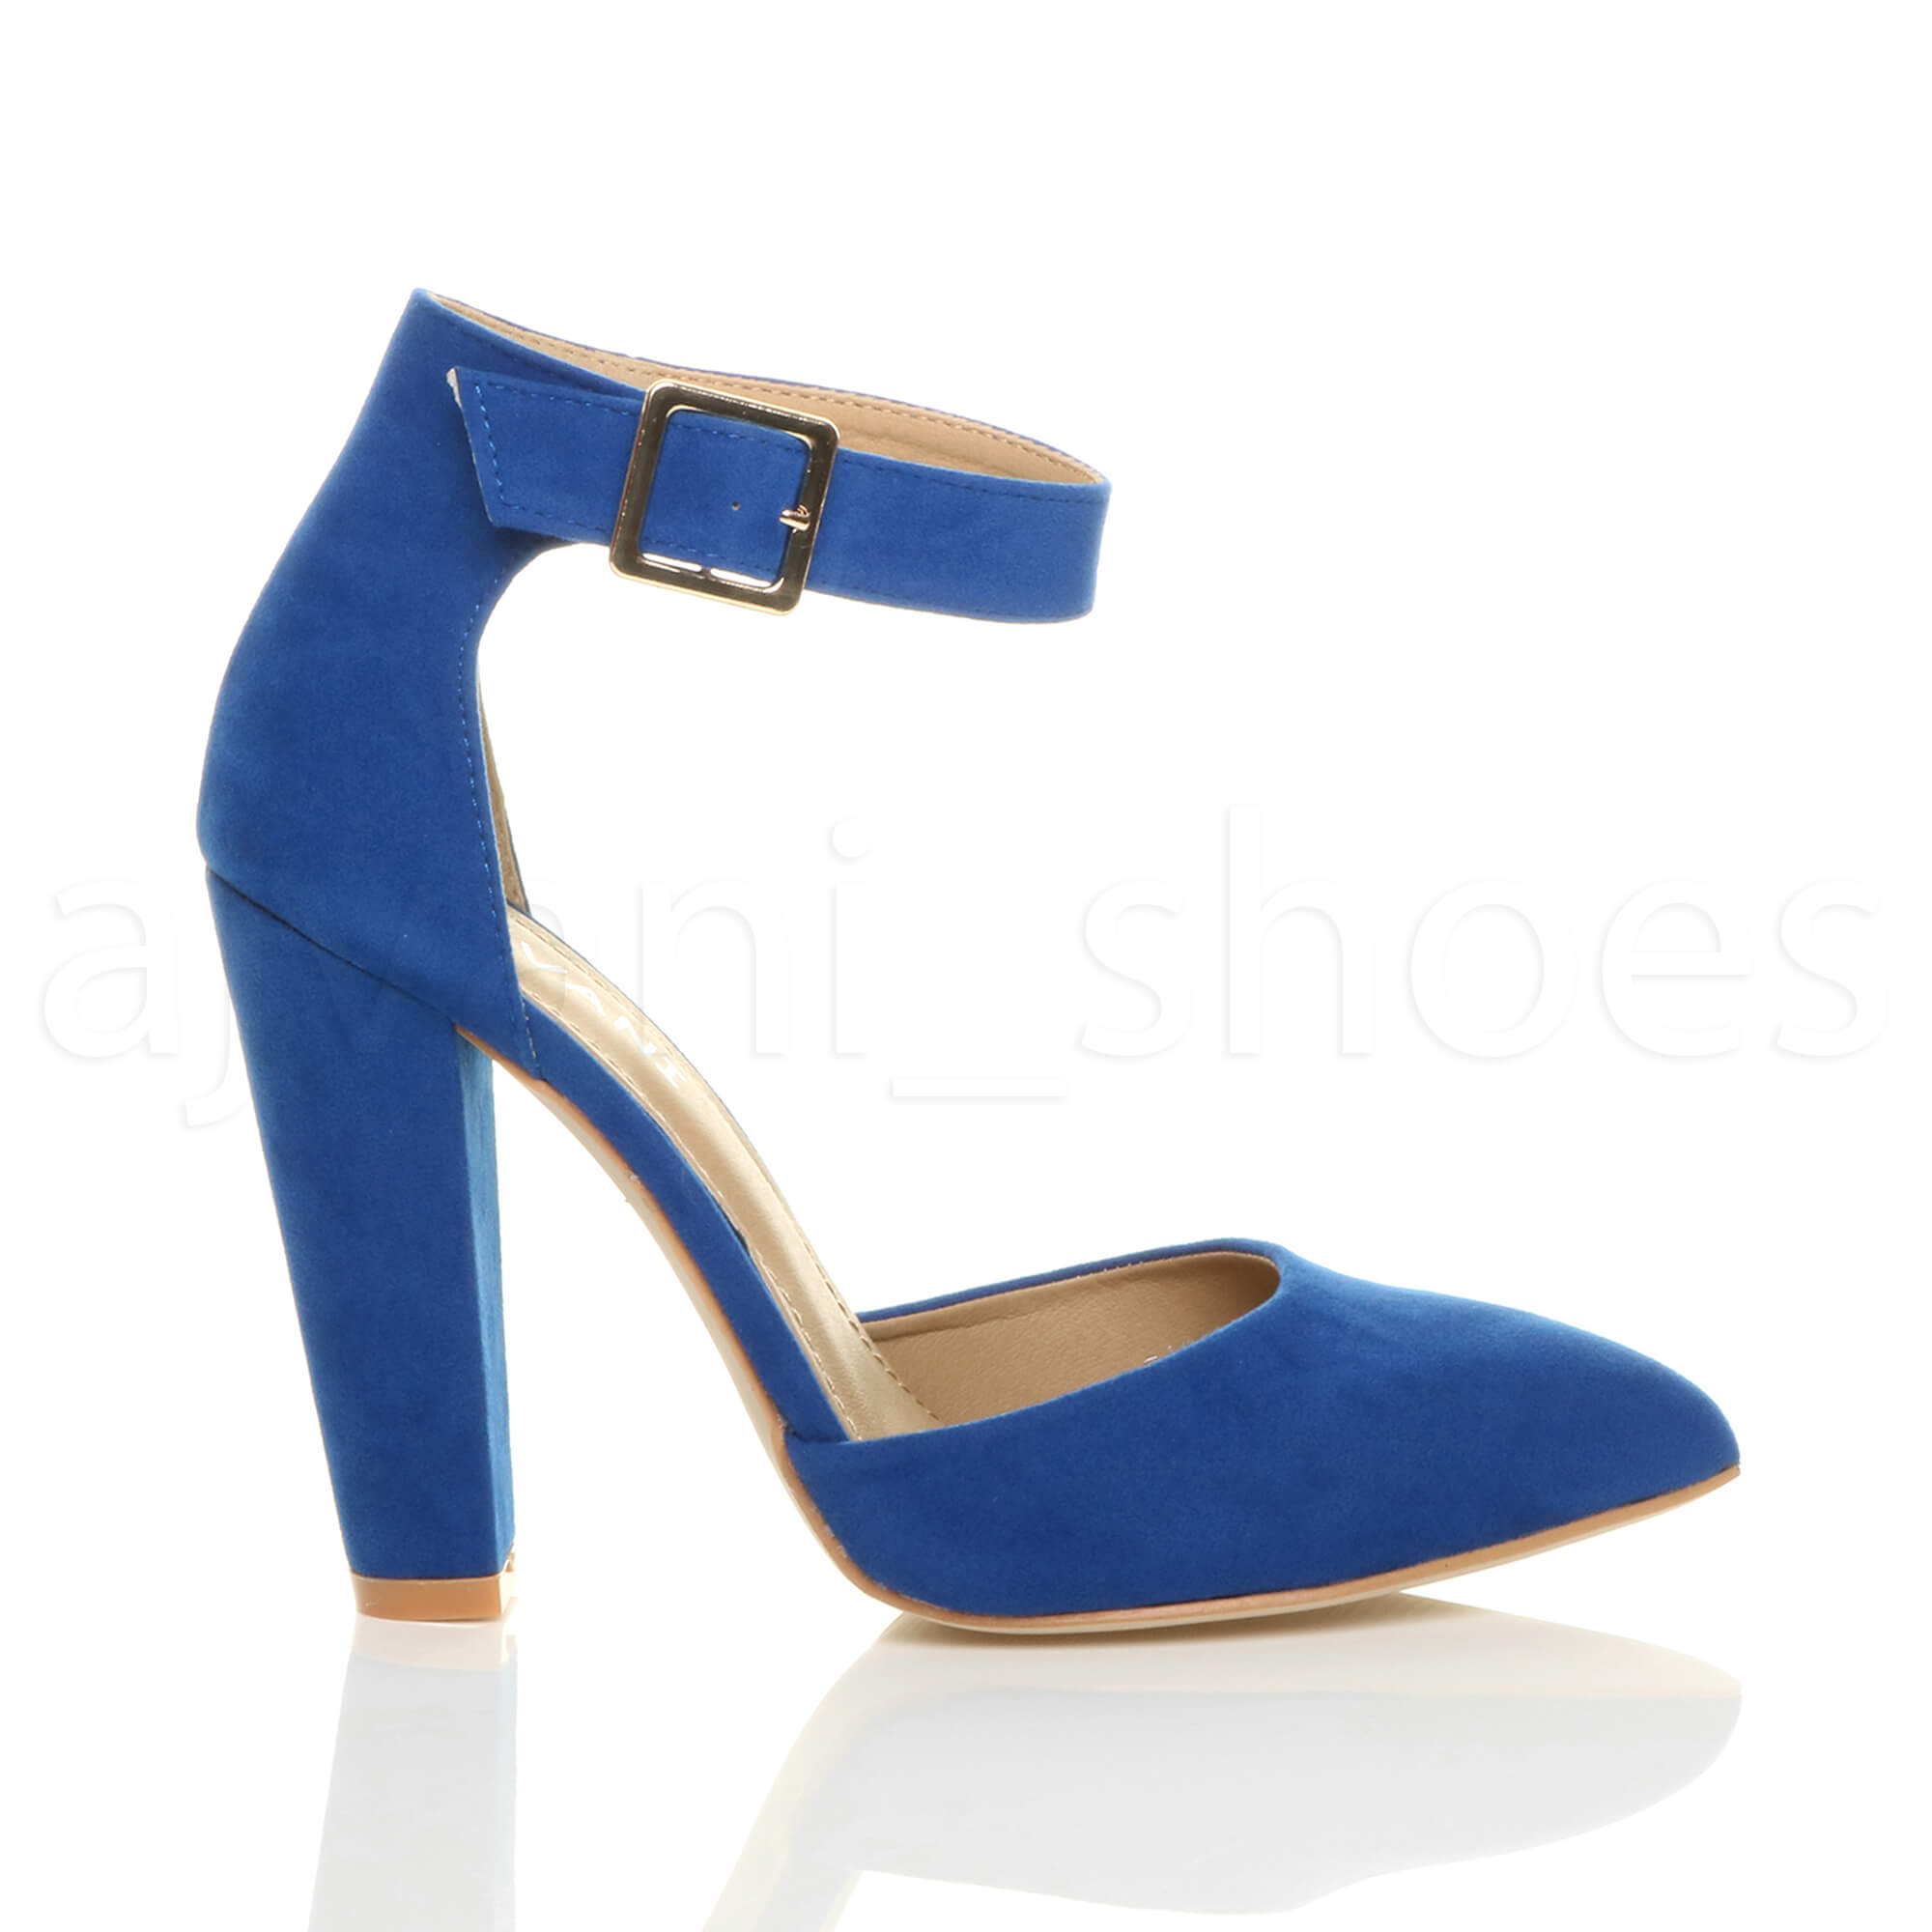 WOMENS-LADIES-HIGH-BLOCK-HEEL-ANKLE-STRAP-BUCKLE-POINTED-COURT-SHOES-SIZE thumbnail 24